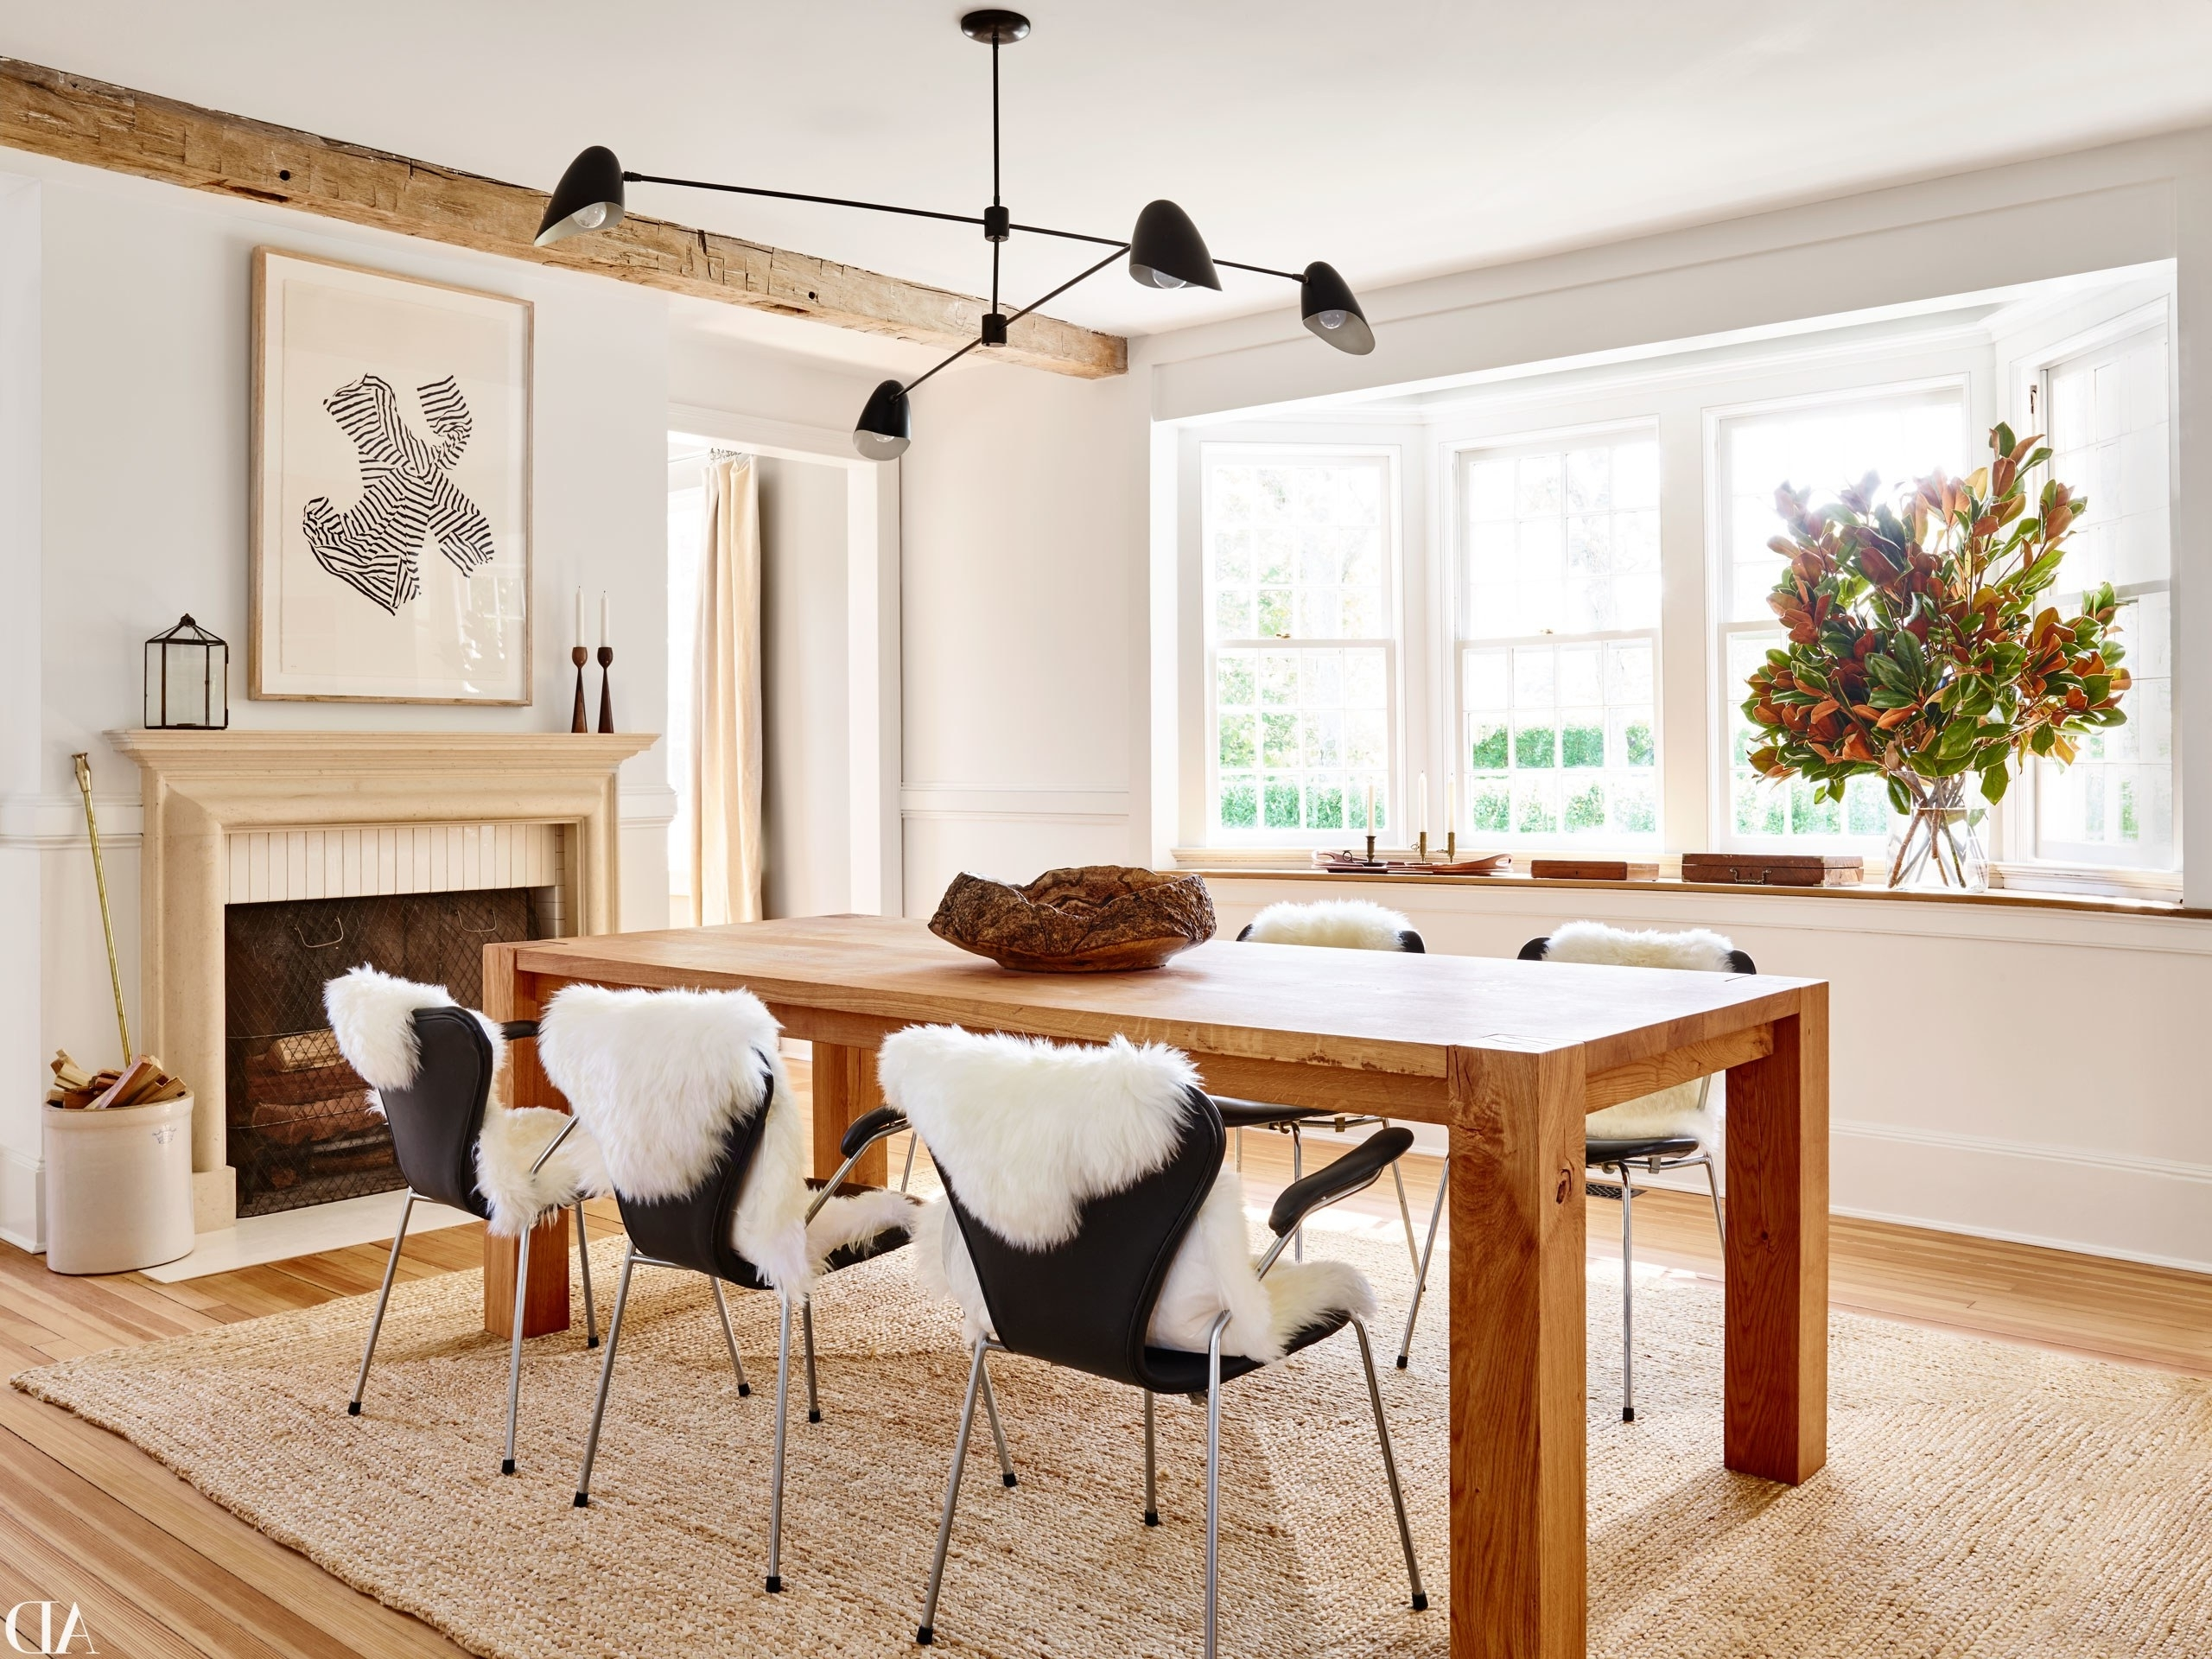 36 Of The Best Dining Rooms Of 2016 Photos (View 10 of 25)